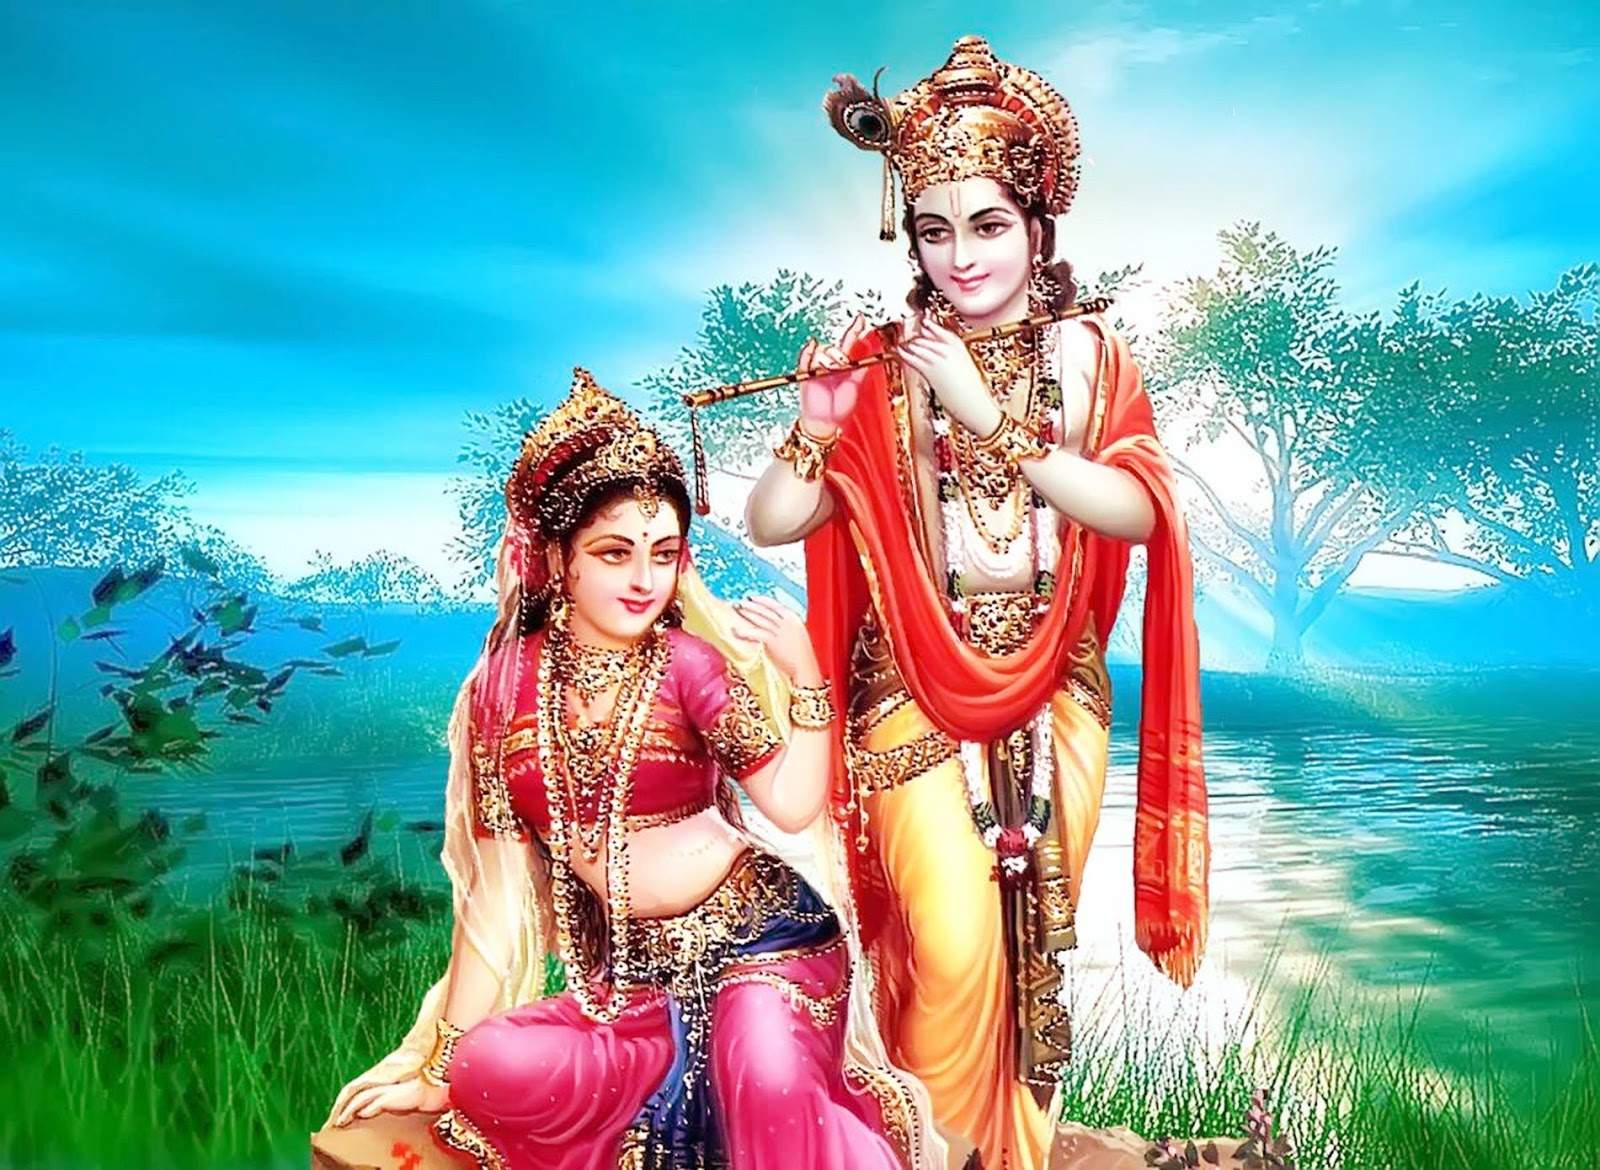 Love Wallpaper Of Radha Krishna : Radha krishna Love HD Wallpaper ~ HD WALLPAPERS